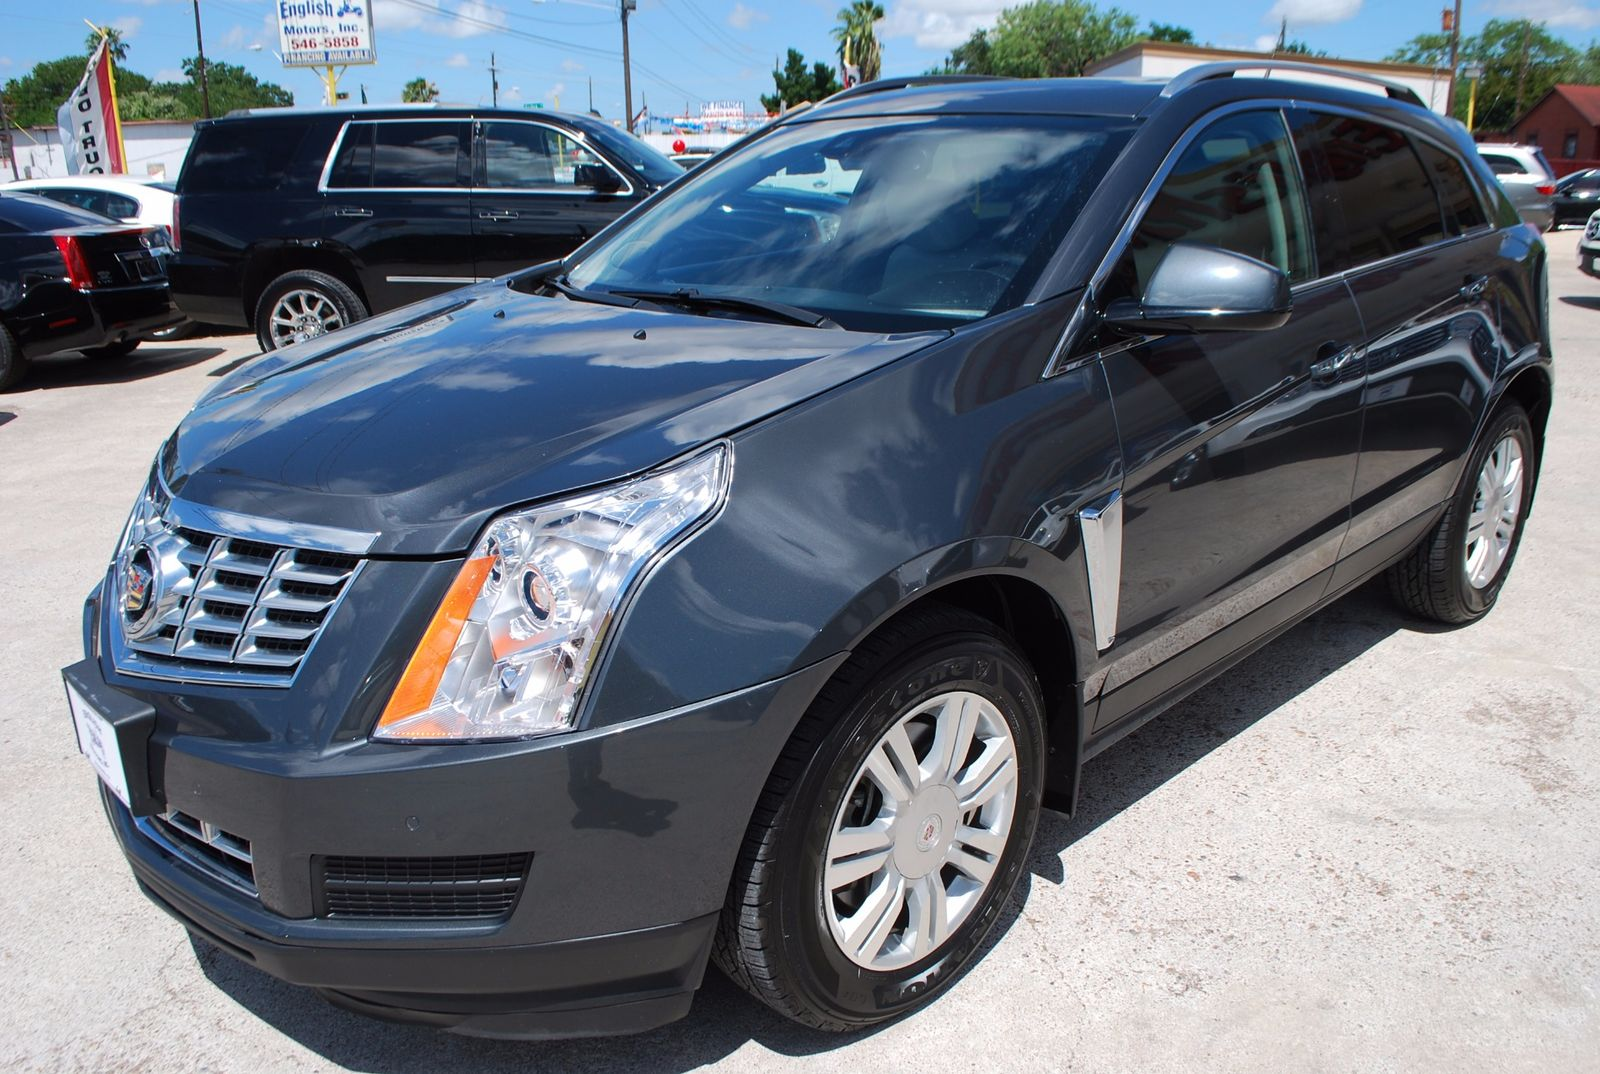 for diminished cadillac appraisal series changes model invoice colors car effective base major new luxury code exterior value utility fwd retail srx